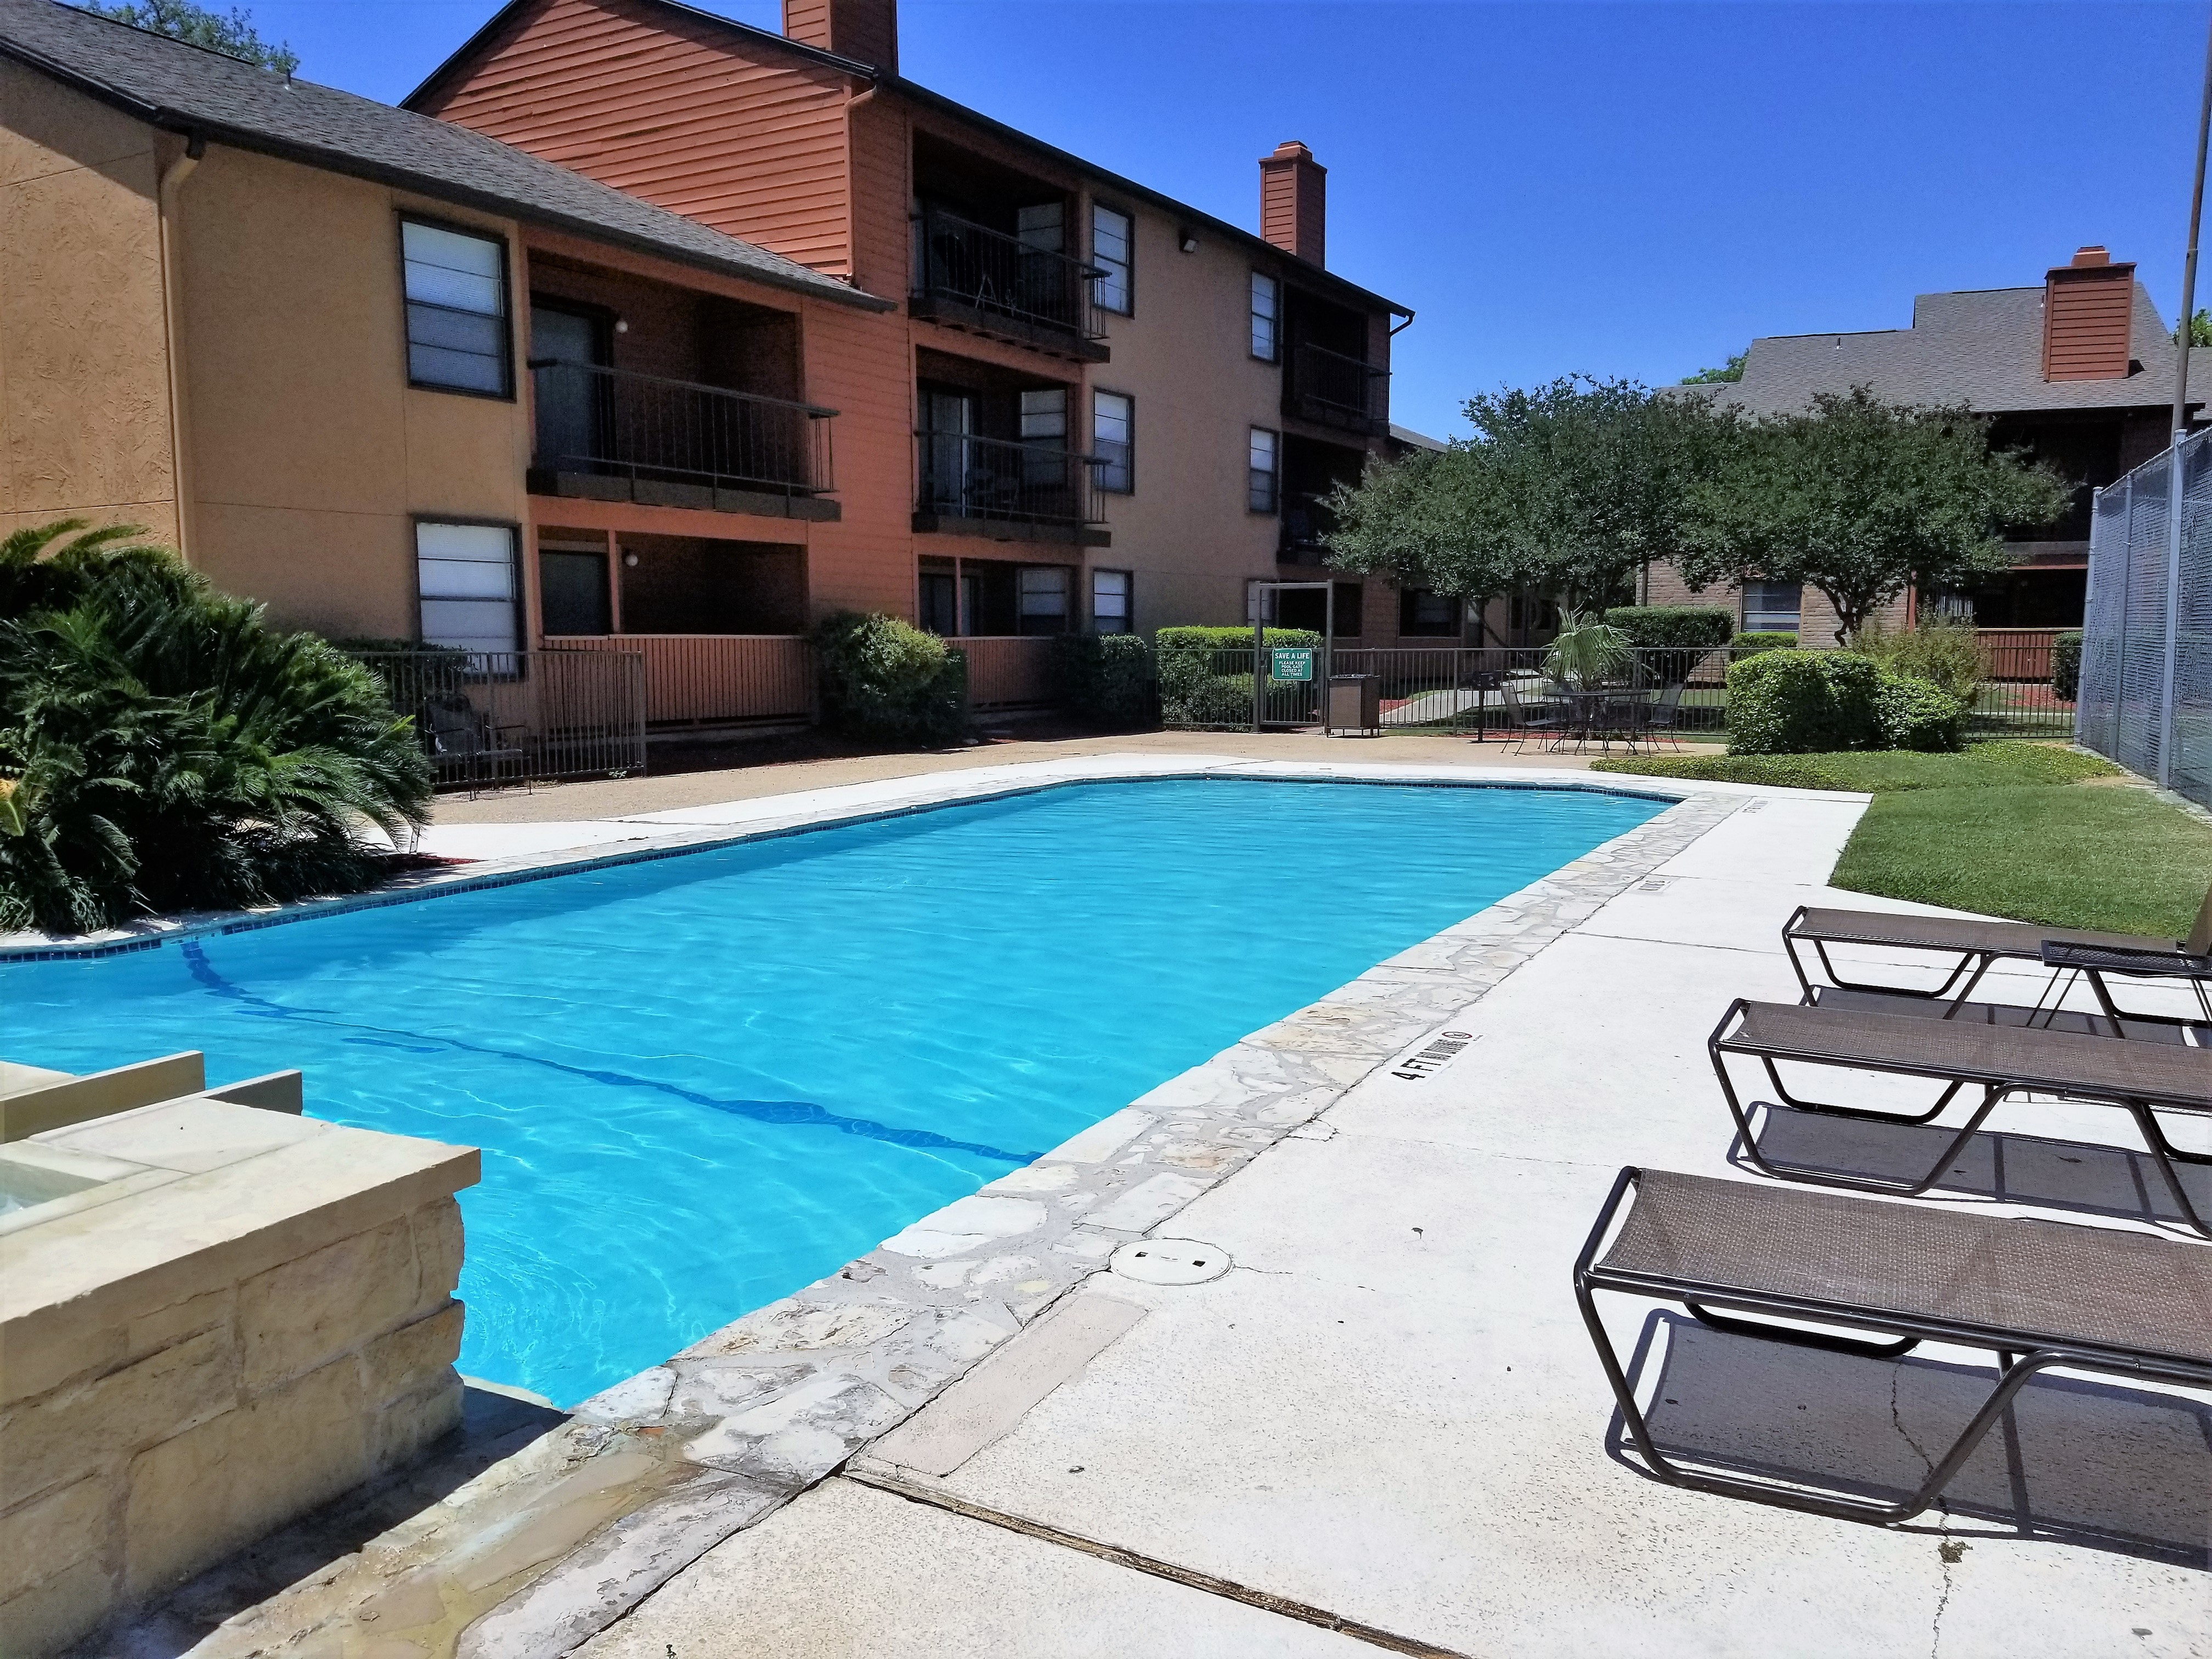 Iron Horse Valley Apartments image 10